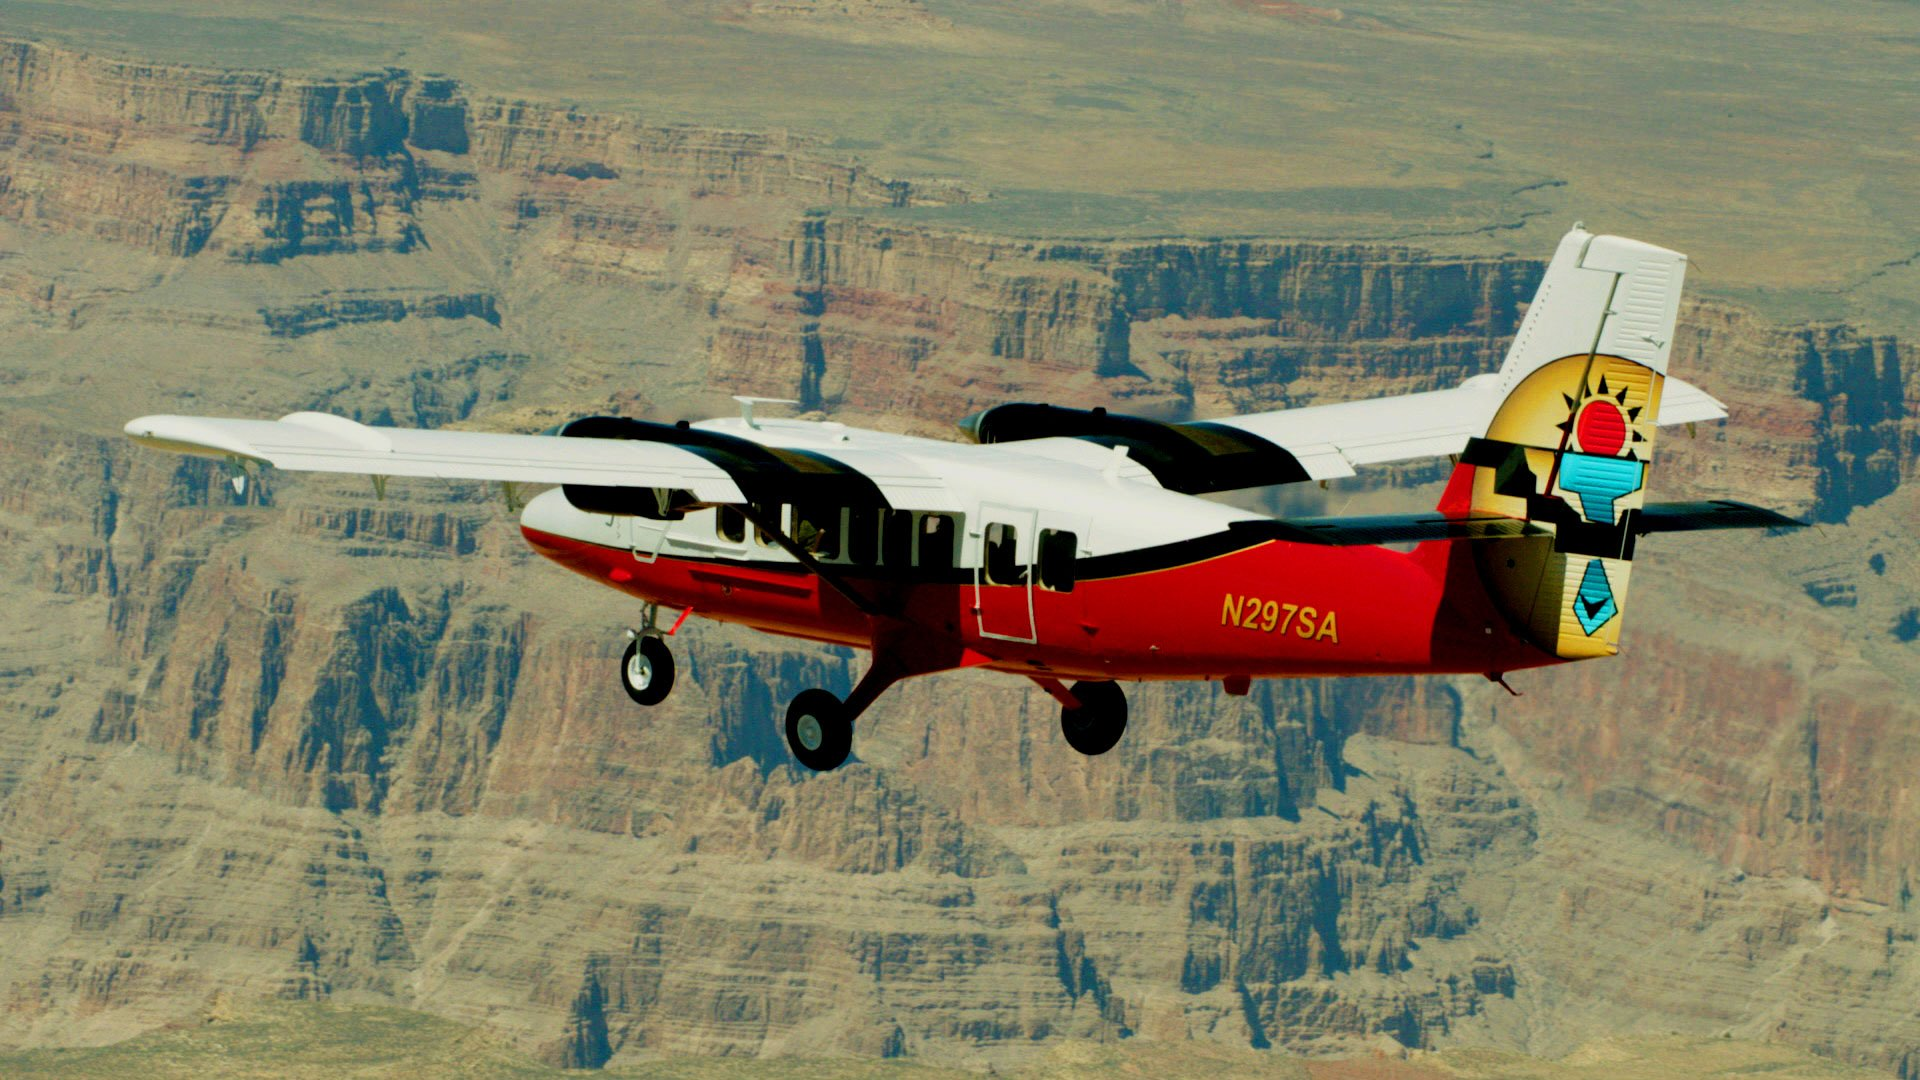 Avion Twin Otter survolant la rive ouest du Grand Canyon au cours d'un Highlights Air Tour